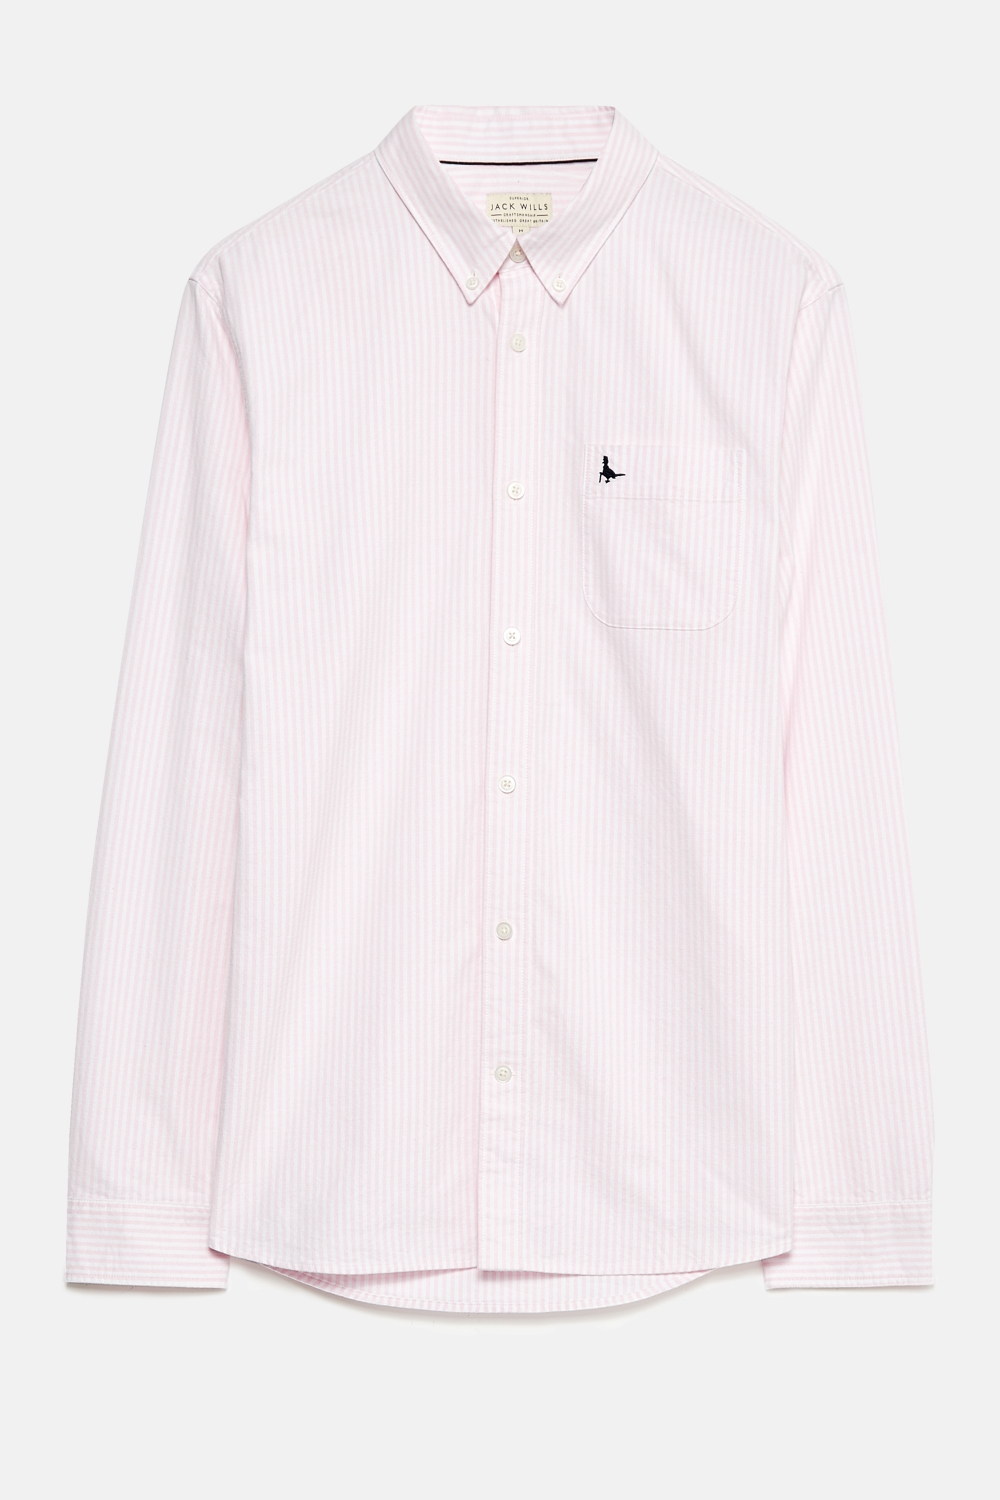 Jack Wills Pink WADSWORTH OXFORD STRIPE SHIRT